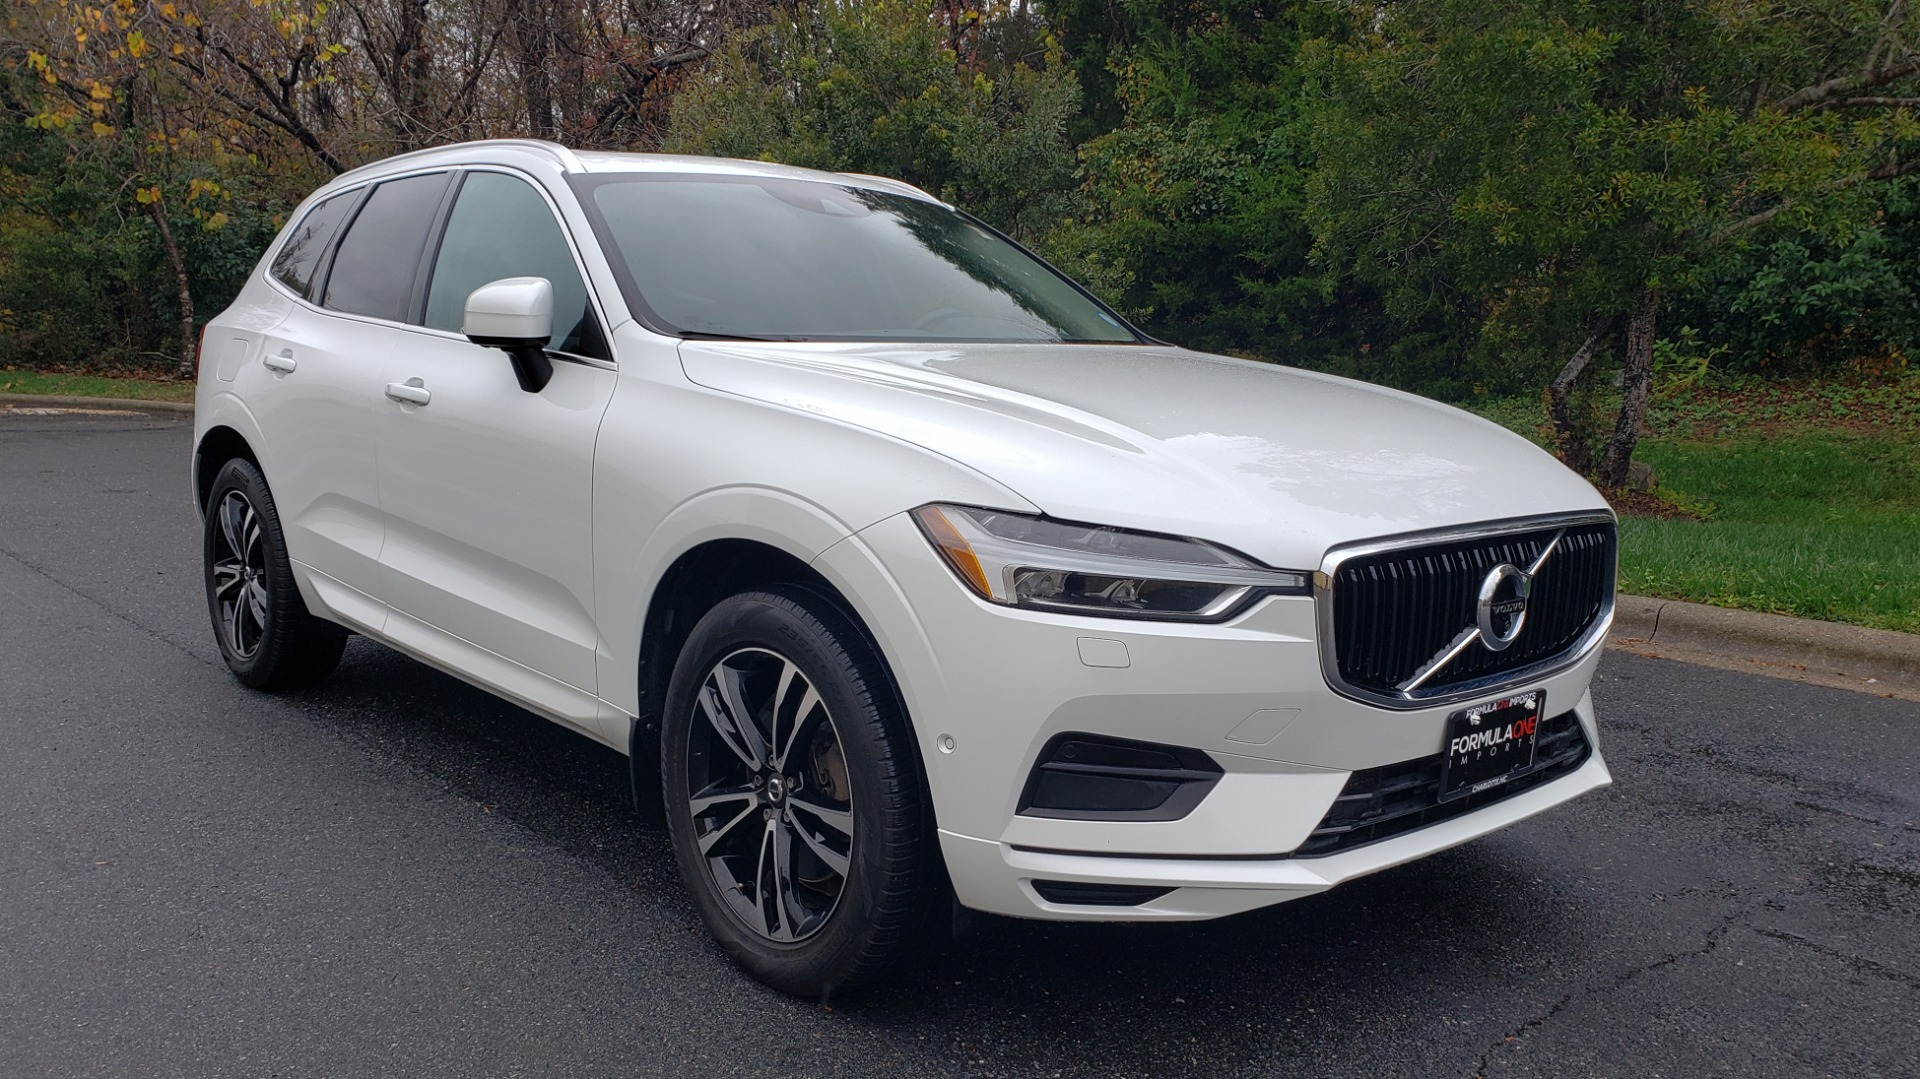 Used 2018 Volvo XC60 MOMENTUM AWD / NAV / SUNROOF / LKA / BLIS / PRK ASST for sale Sold at Formula Imports in Charlotte NC 28227 4